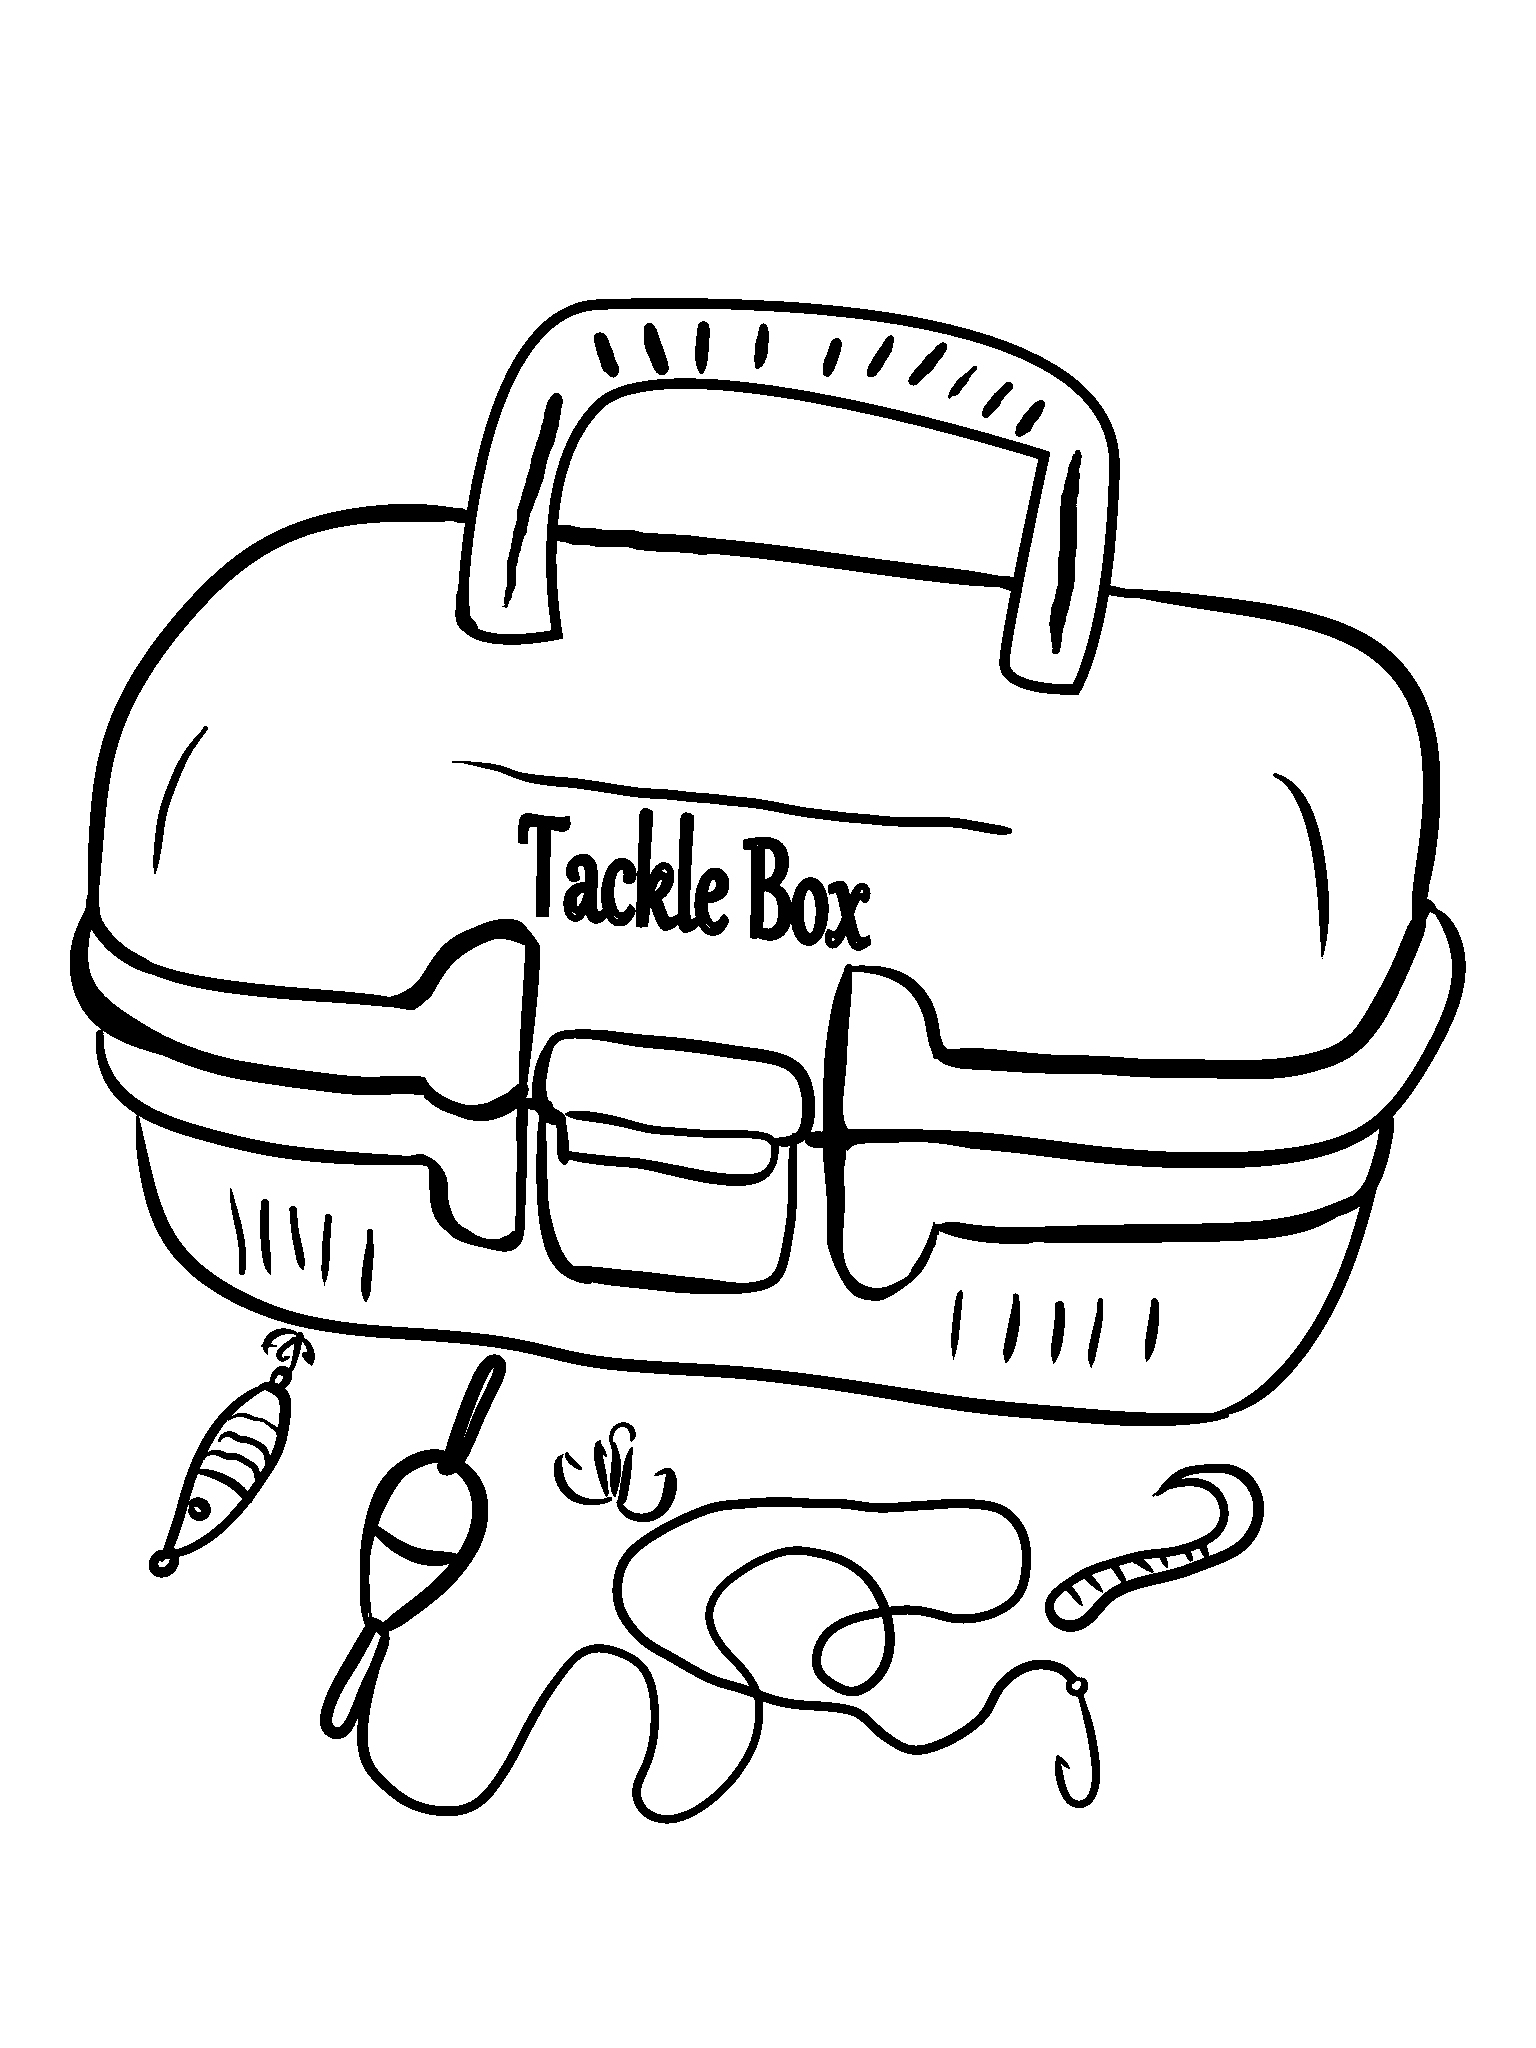 Free fishing pole coloring pages ~ Fishing Rod Coloring Page at GetDrawings.com | Free for ...